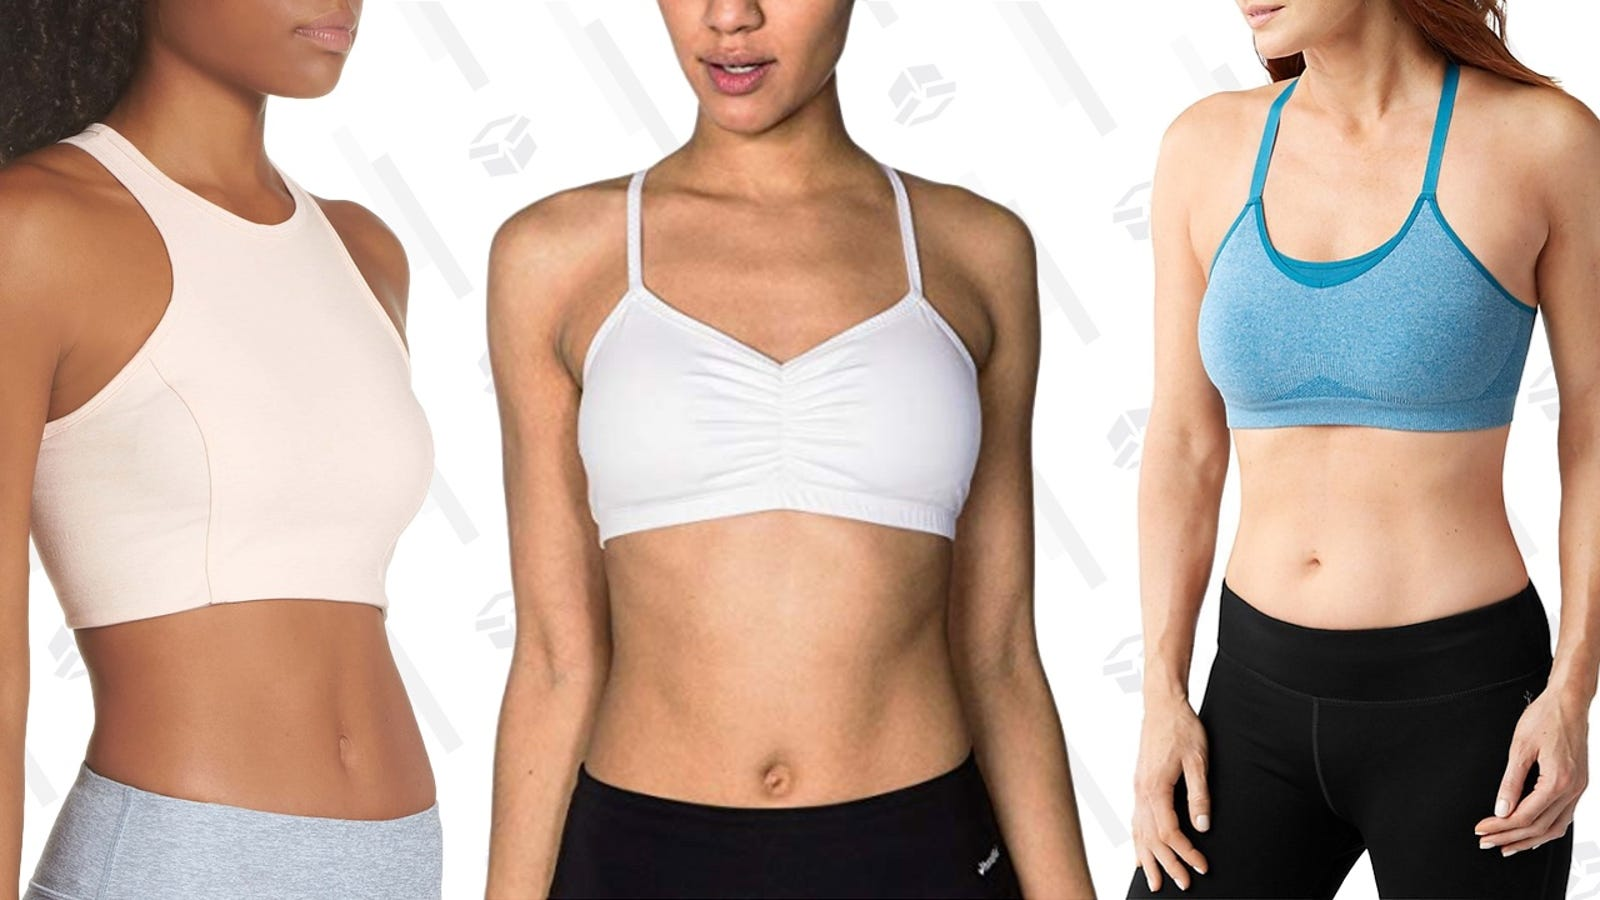 dc7b0b0047c53a 10 Great Sports Bras for Active Women